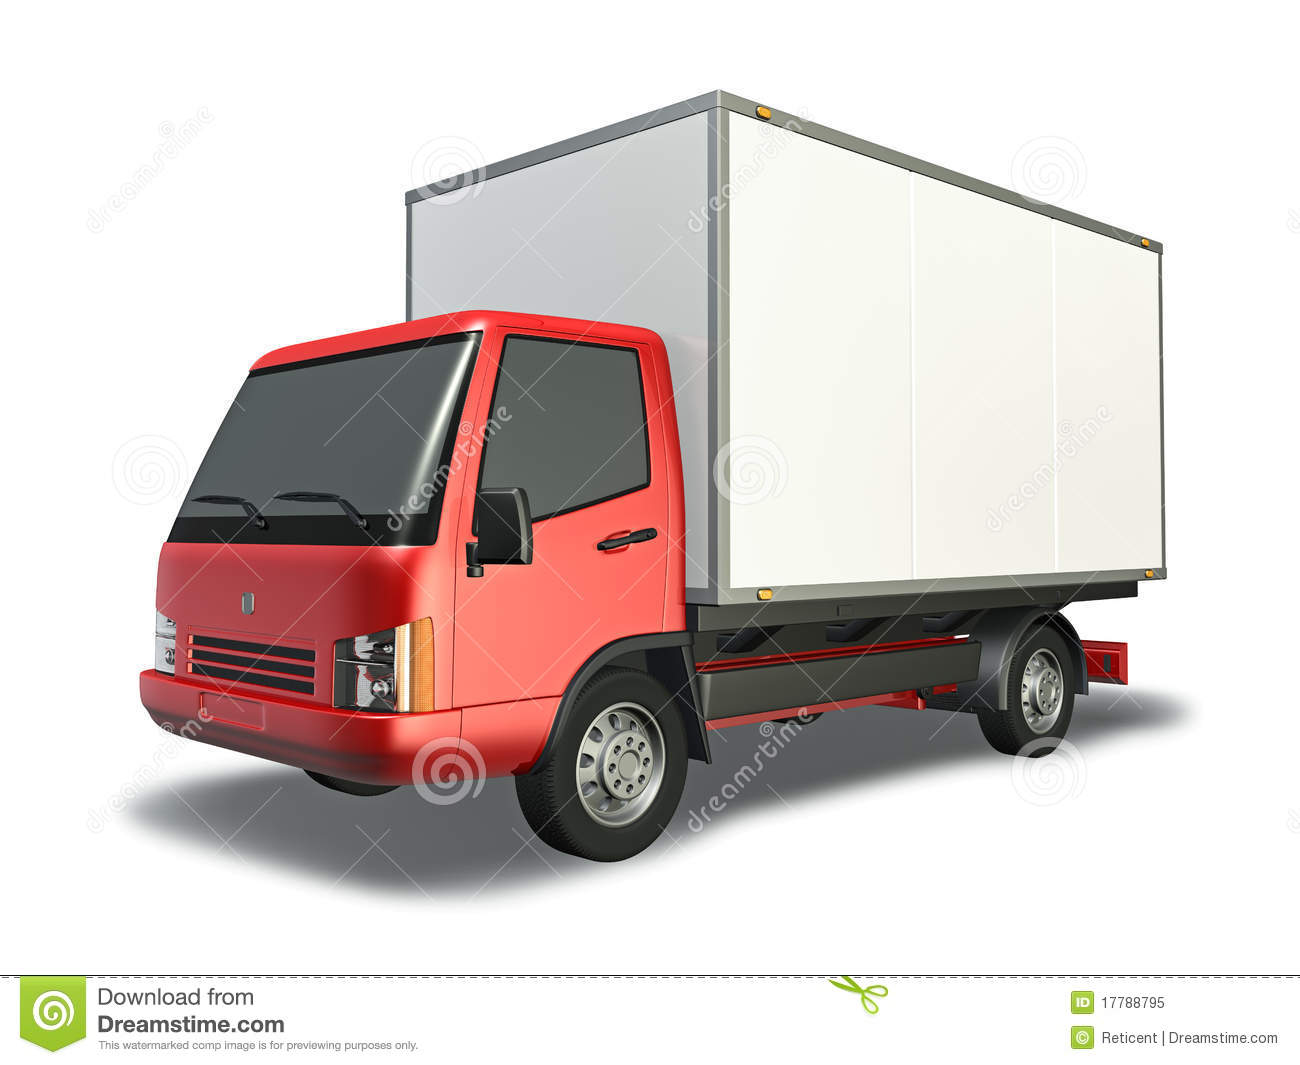 small truck stock illustration image of vehicle small 17788795. Black Bedroom Furniture Sets. Home Design Ideas